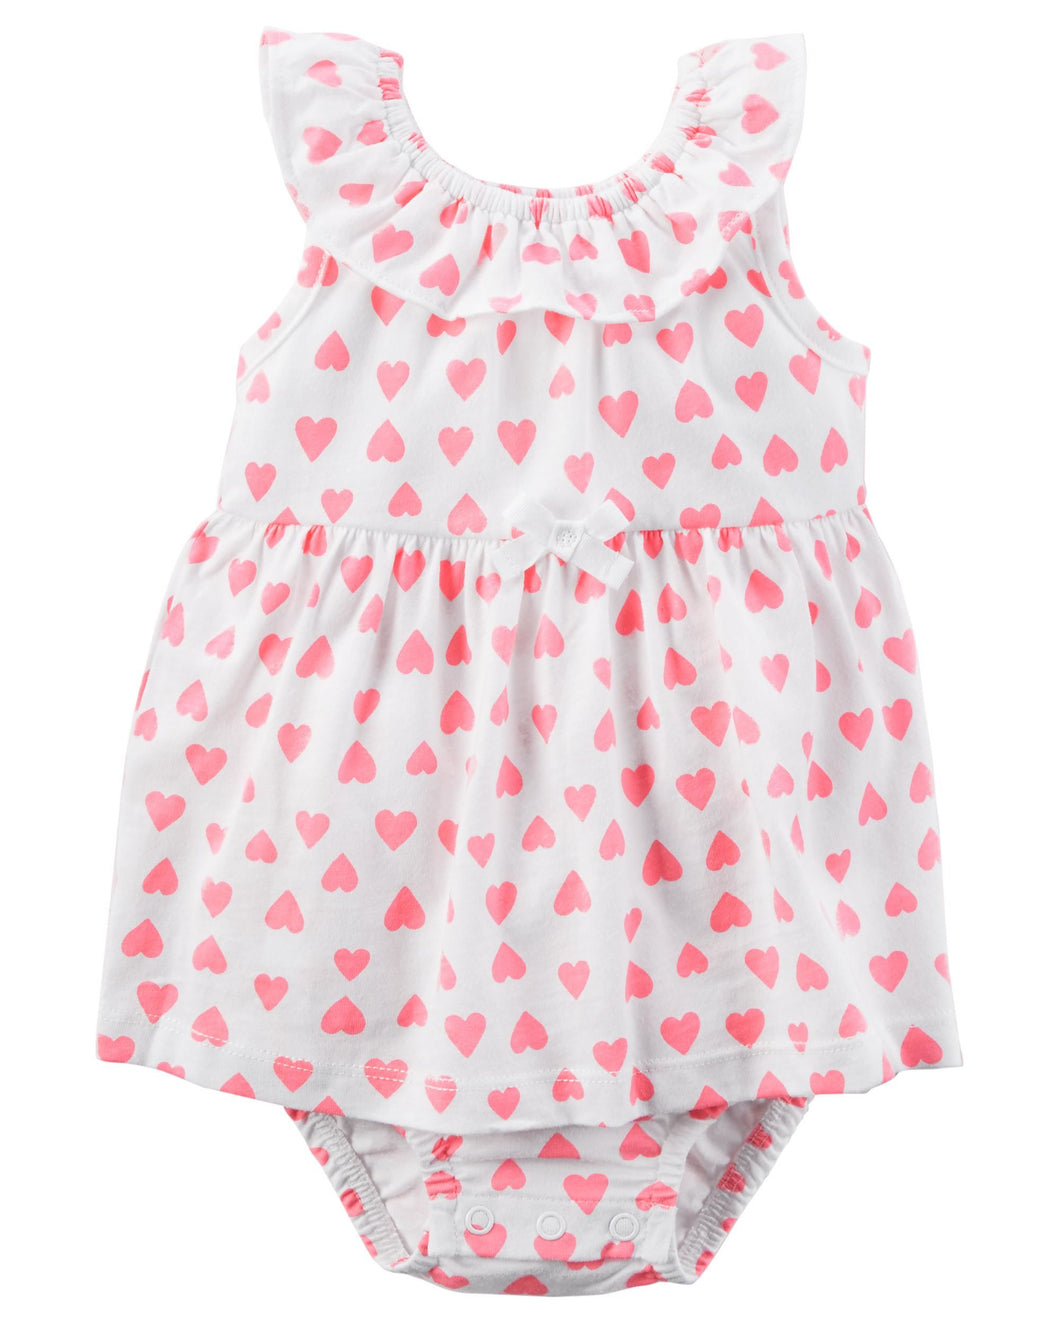 Full of Hearts Sunsuit